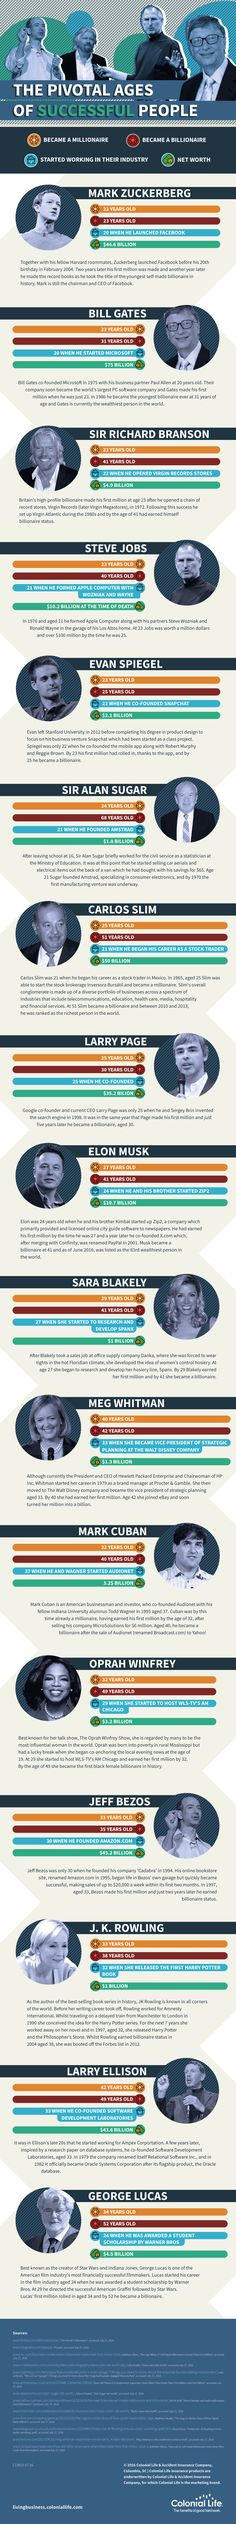 Is It Your Time? The Pivotal Ages of Successful People [Infographic] - Learn how I made it to in one months with e-commerce! Famous Leadership Quotes, People Infographic, Famous Entrepreneurs, Mans World, Steve Jobs, Successful People, Life Purpose, One In A Million, Starting A Business